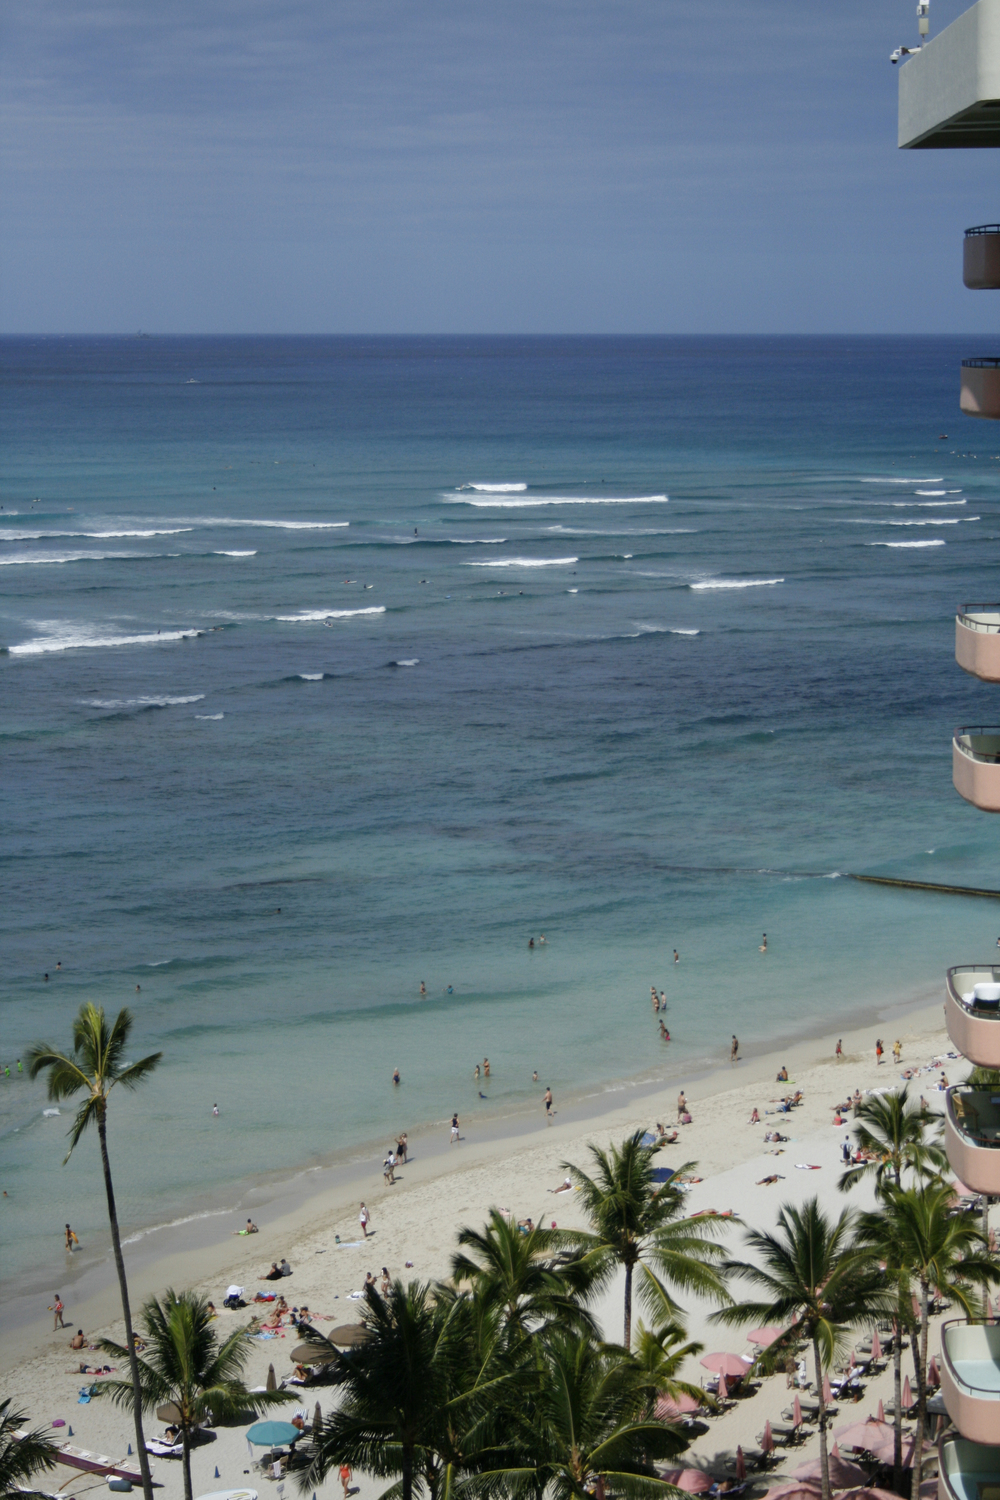 The View from our 15th floor room at the Outrigger Waikiki on the Beach.